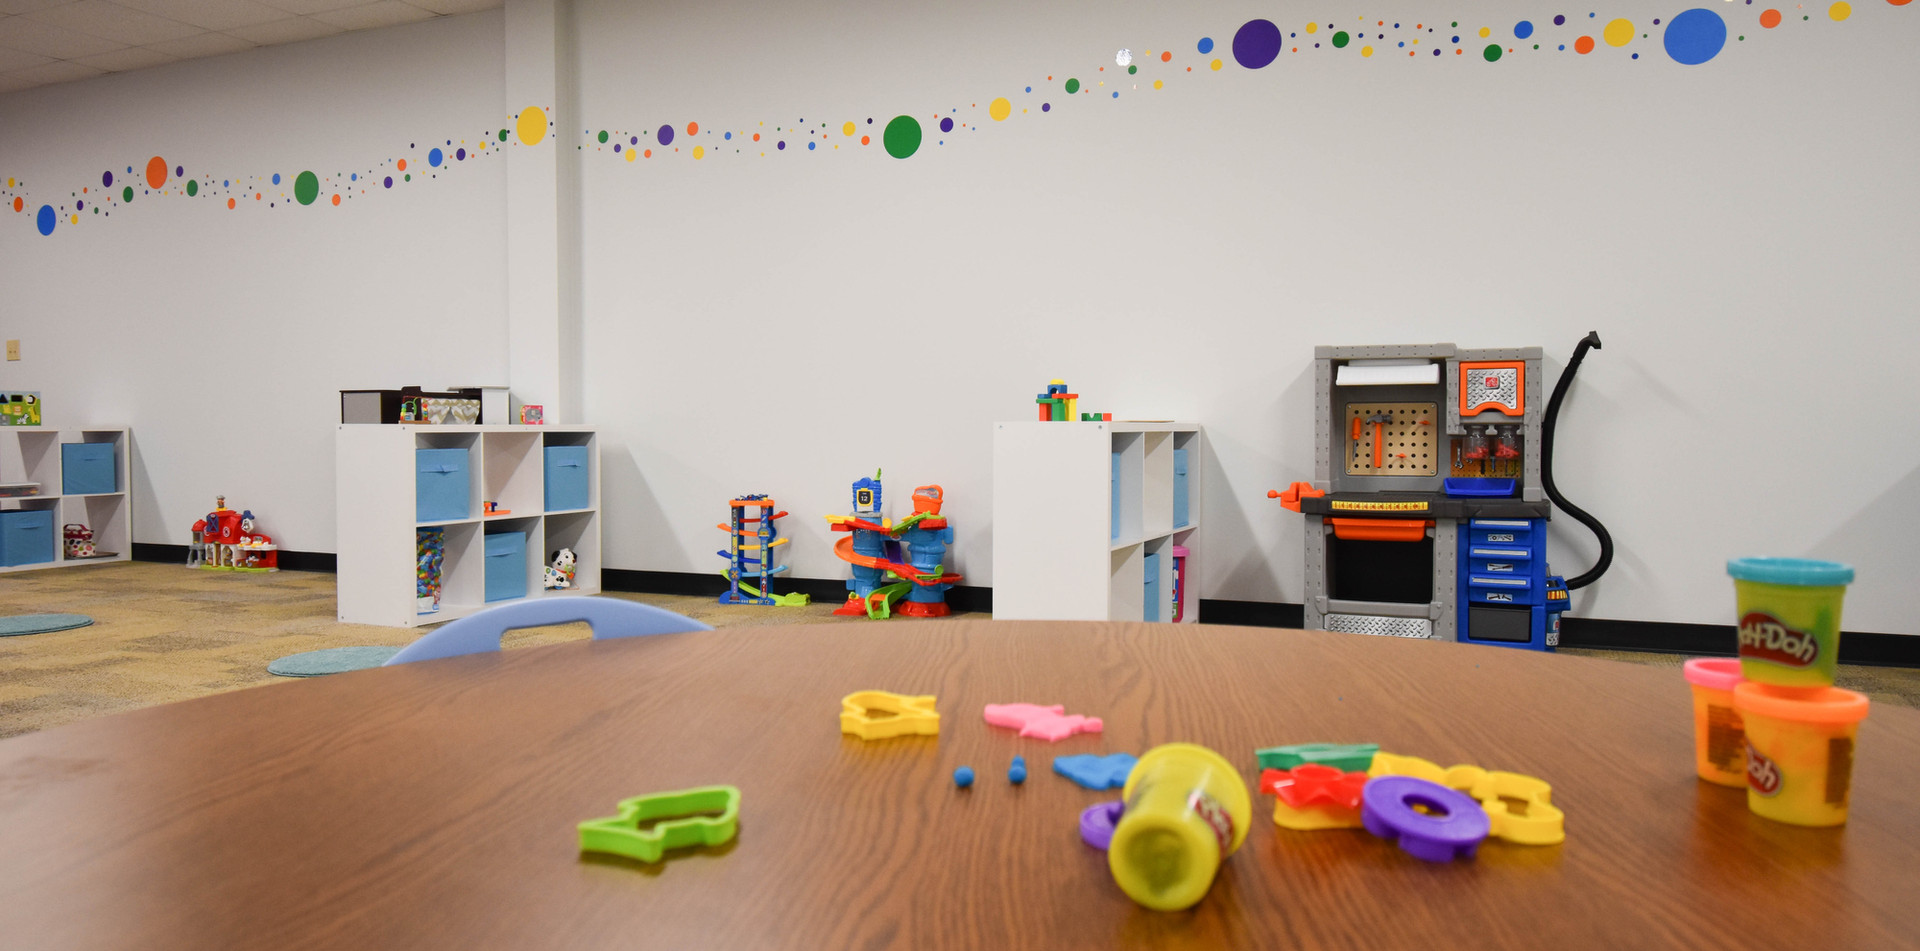 San Antonio Center Playroom